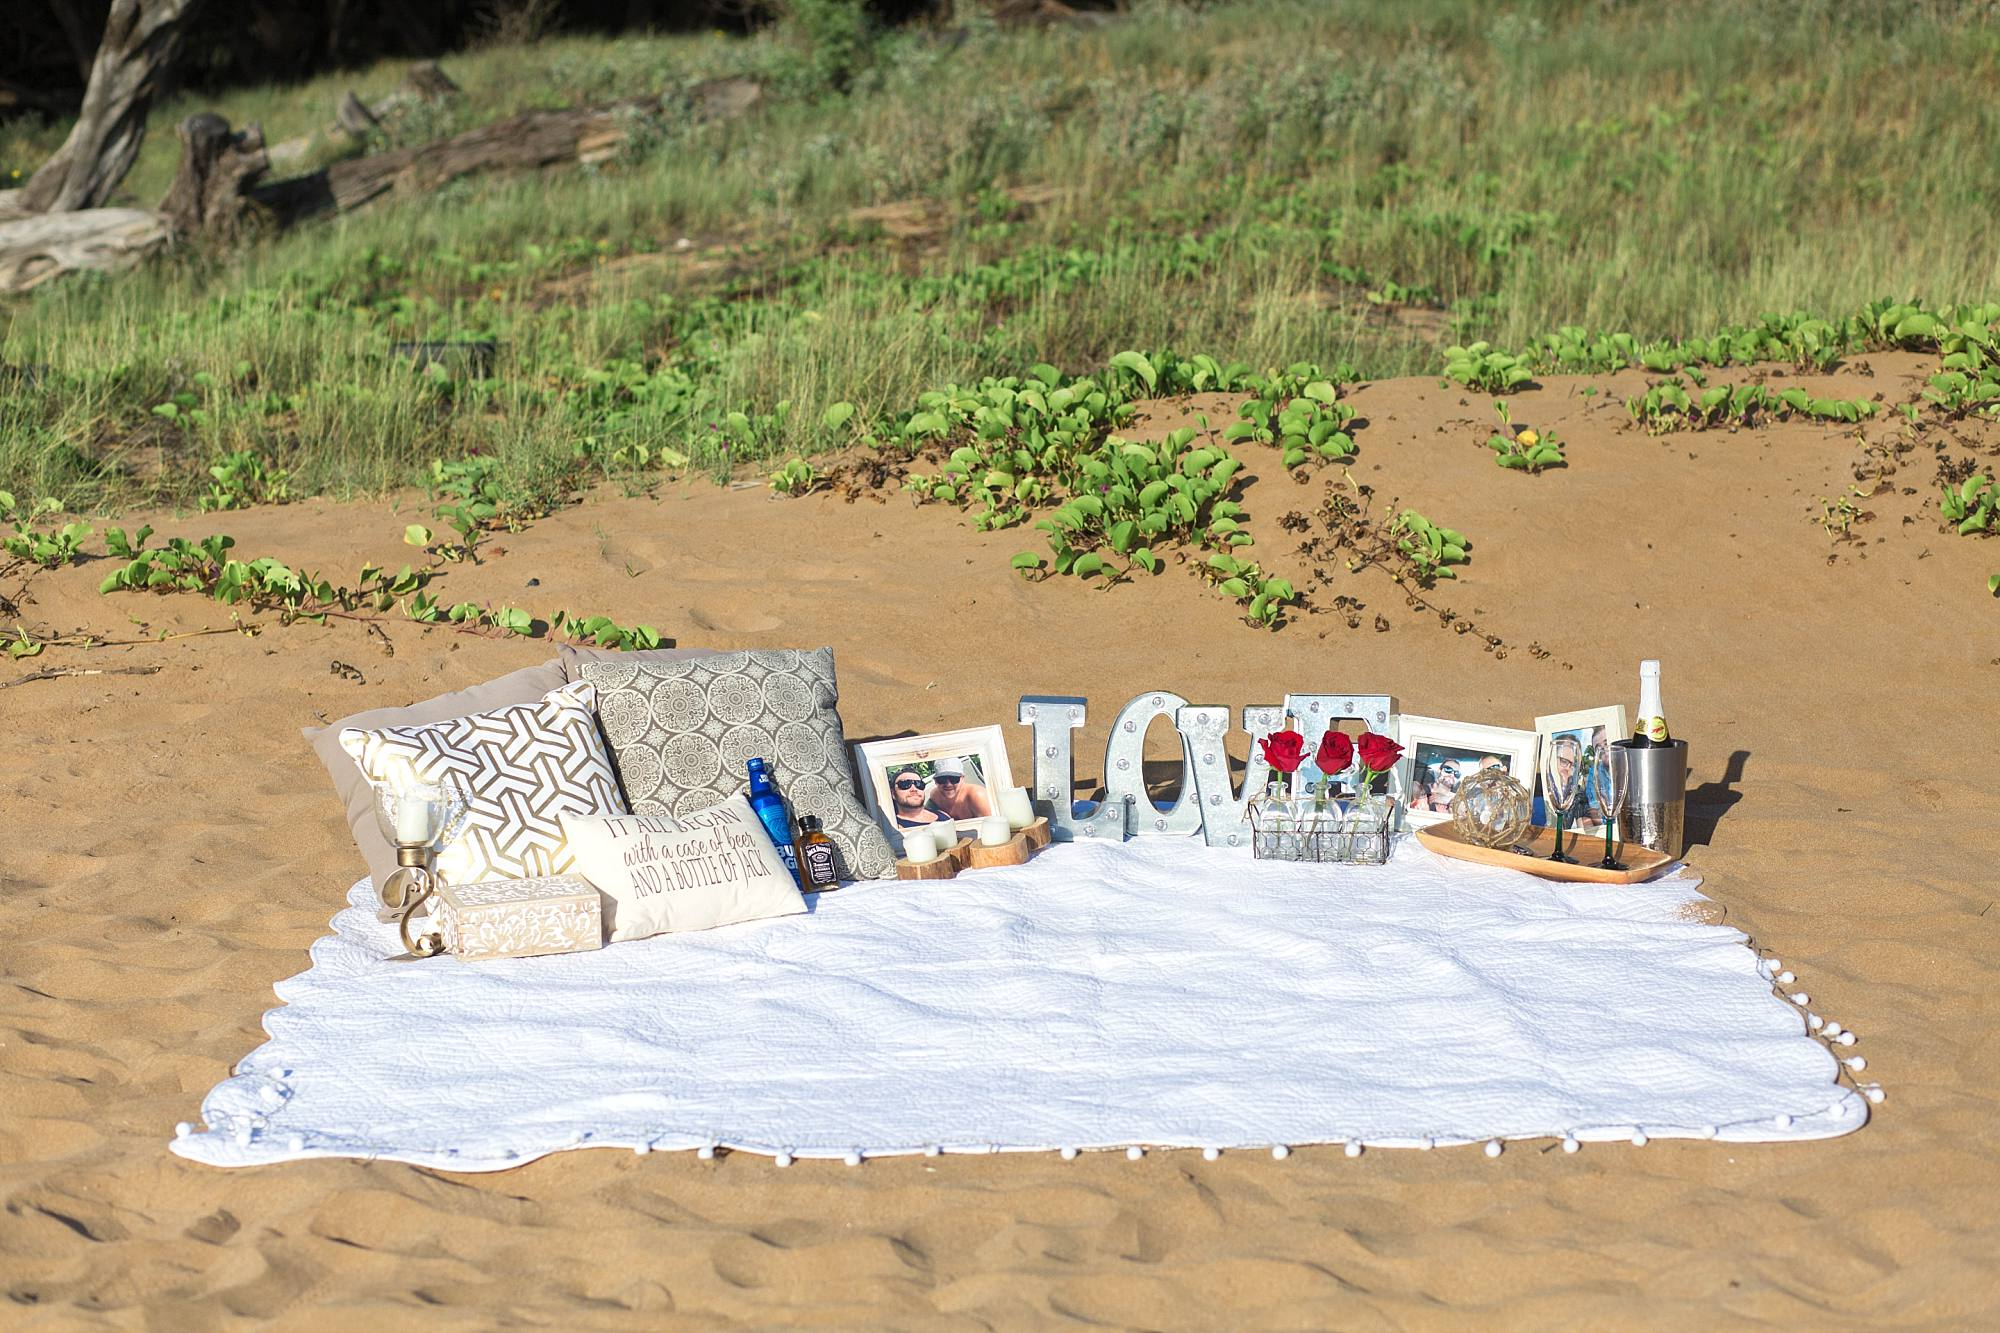 Proposal picnic in the sand set up with LOVE spelled out, blanket, pillows